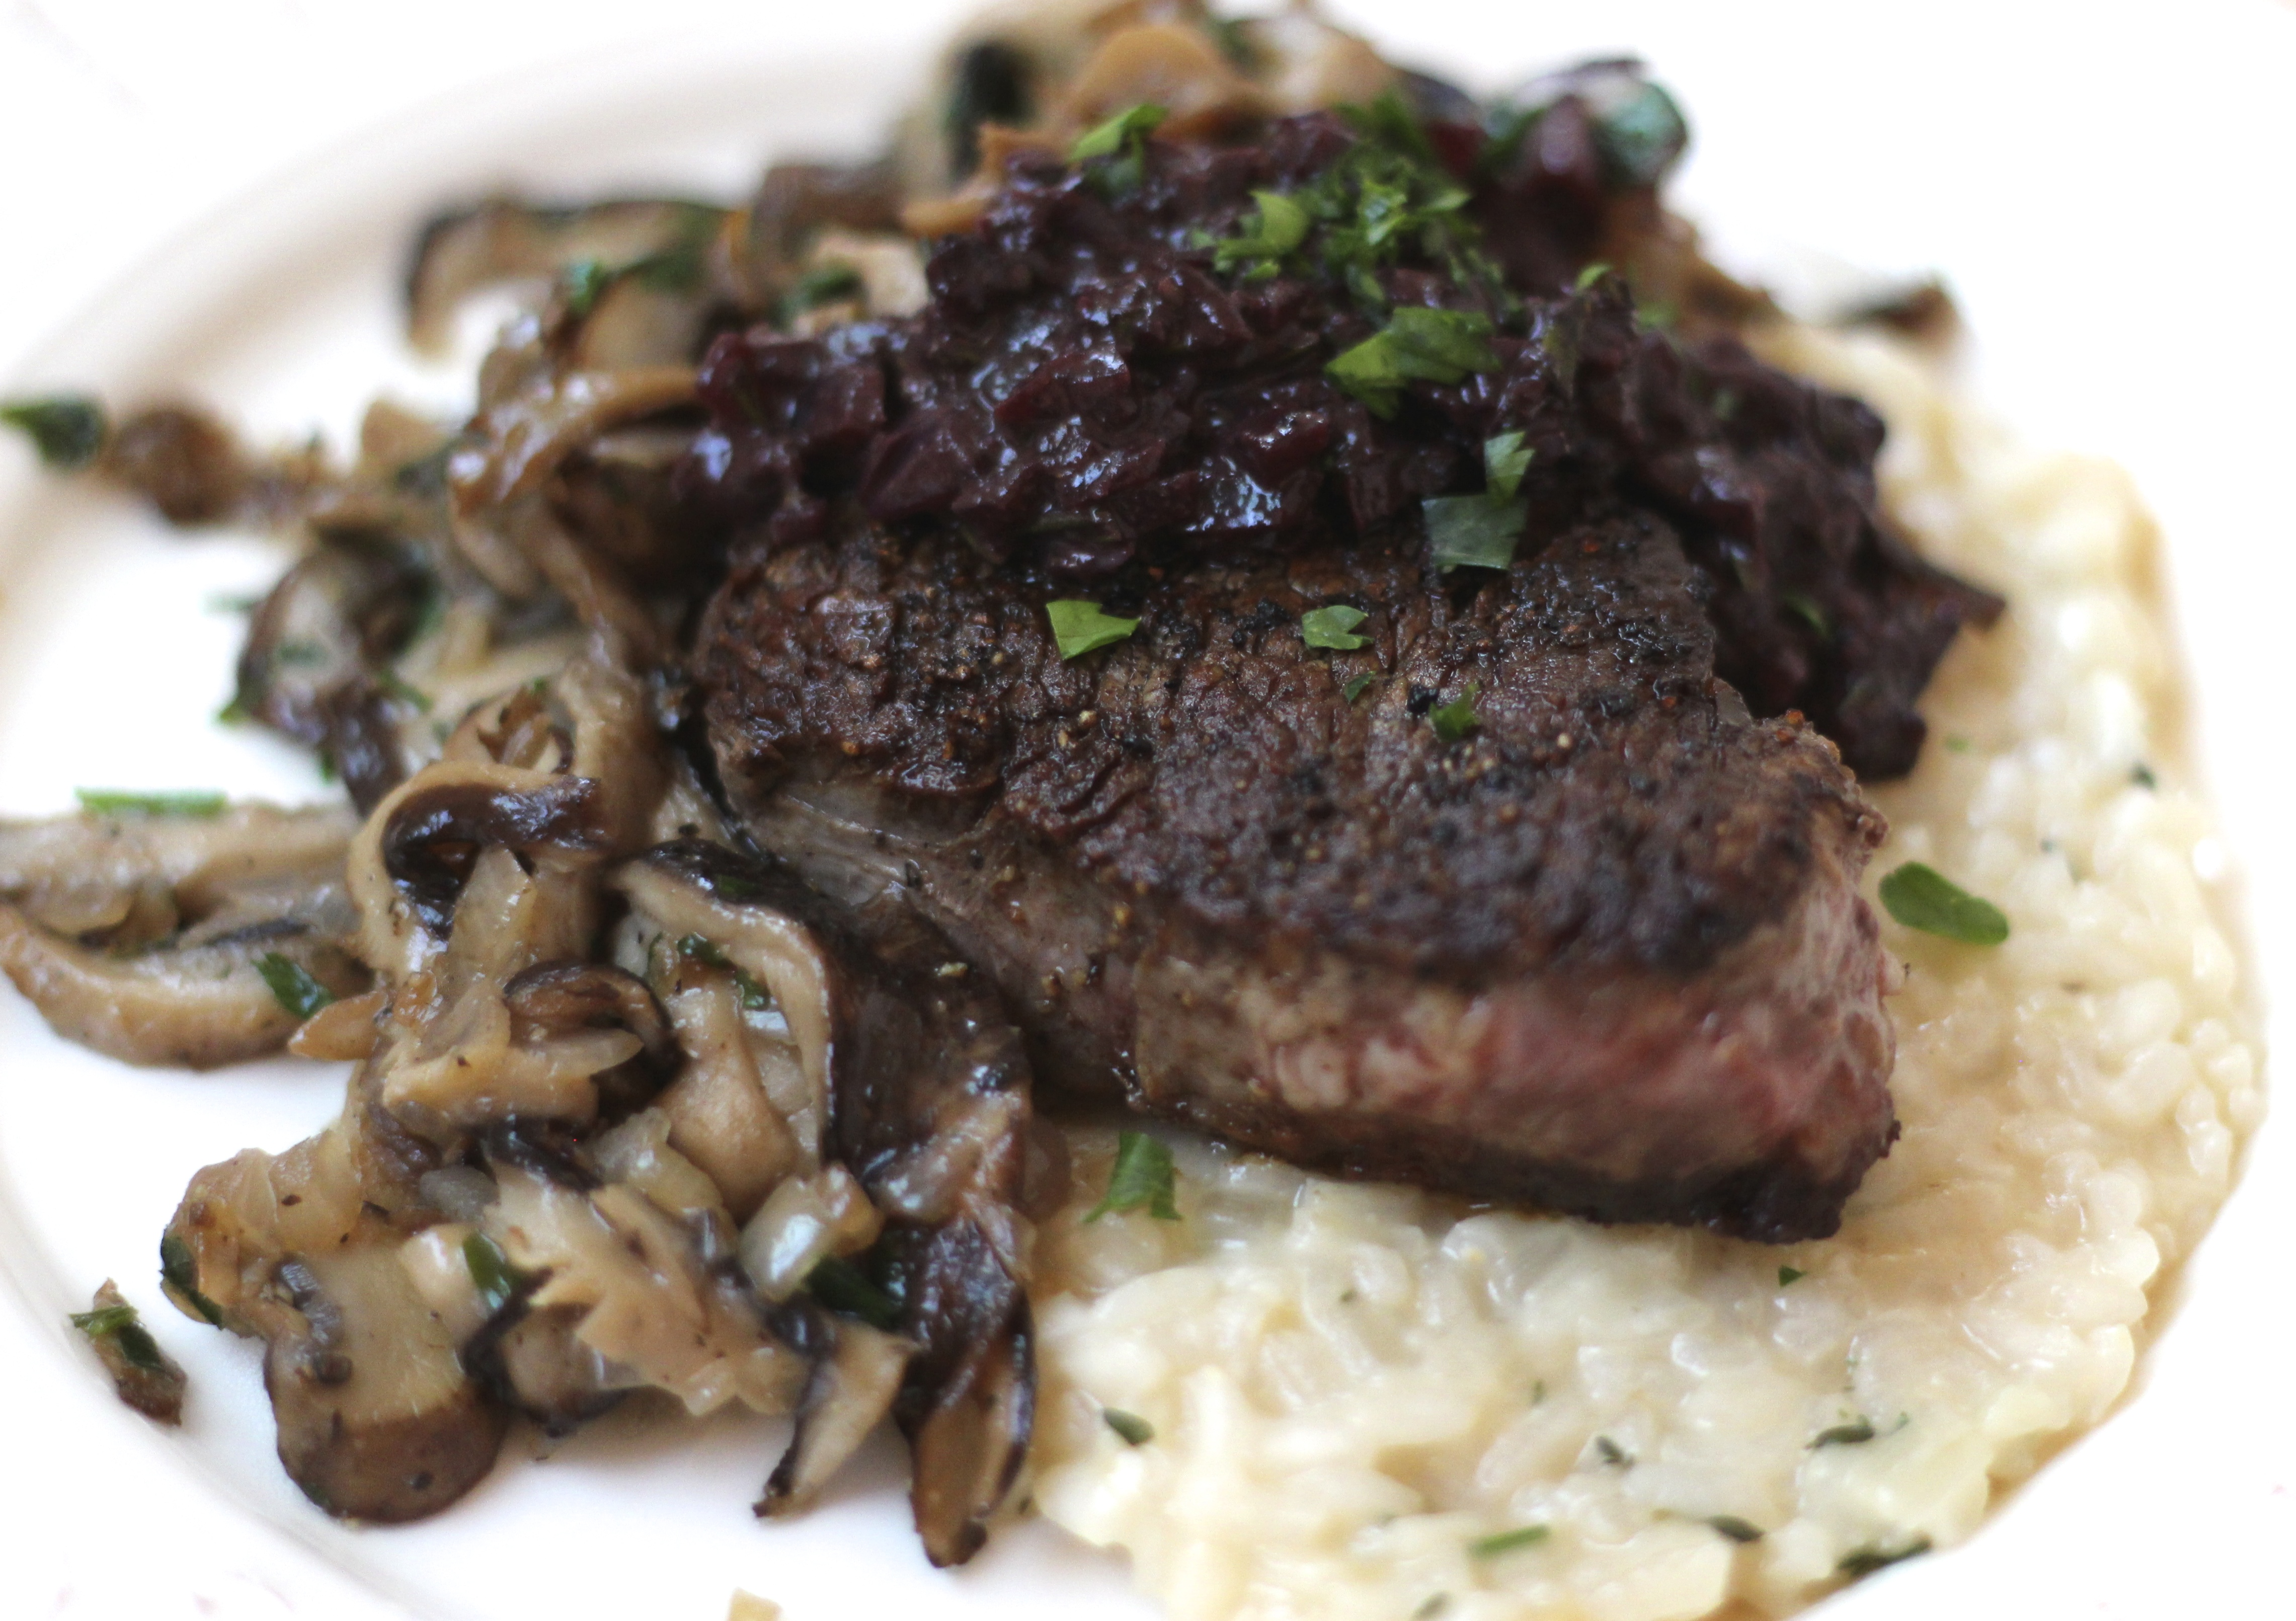 Pan Seared Filets With Red Wine Sauce & Wild Mushroom Ragout